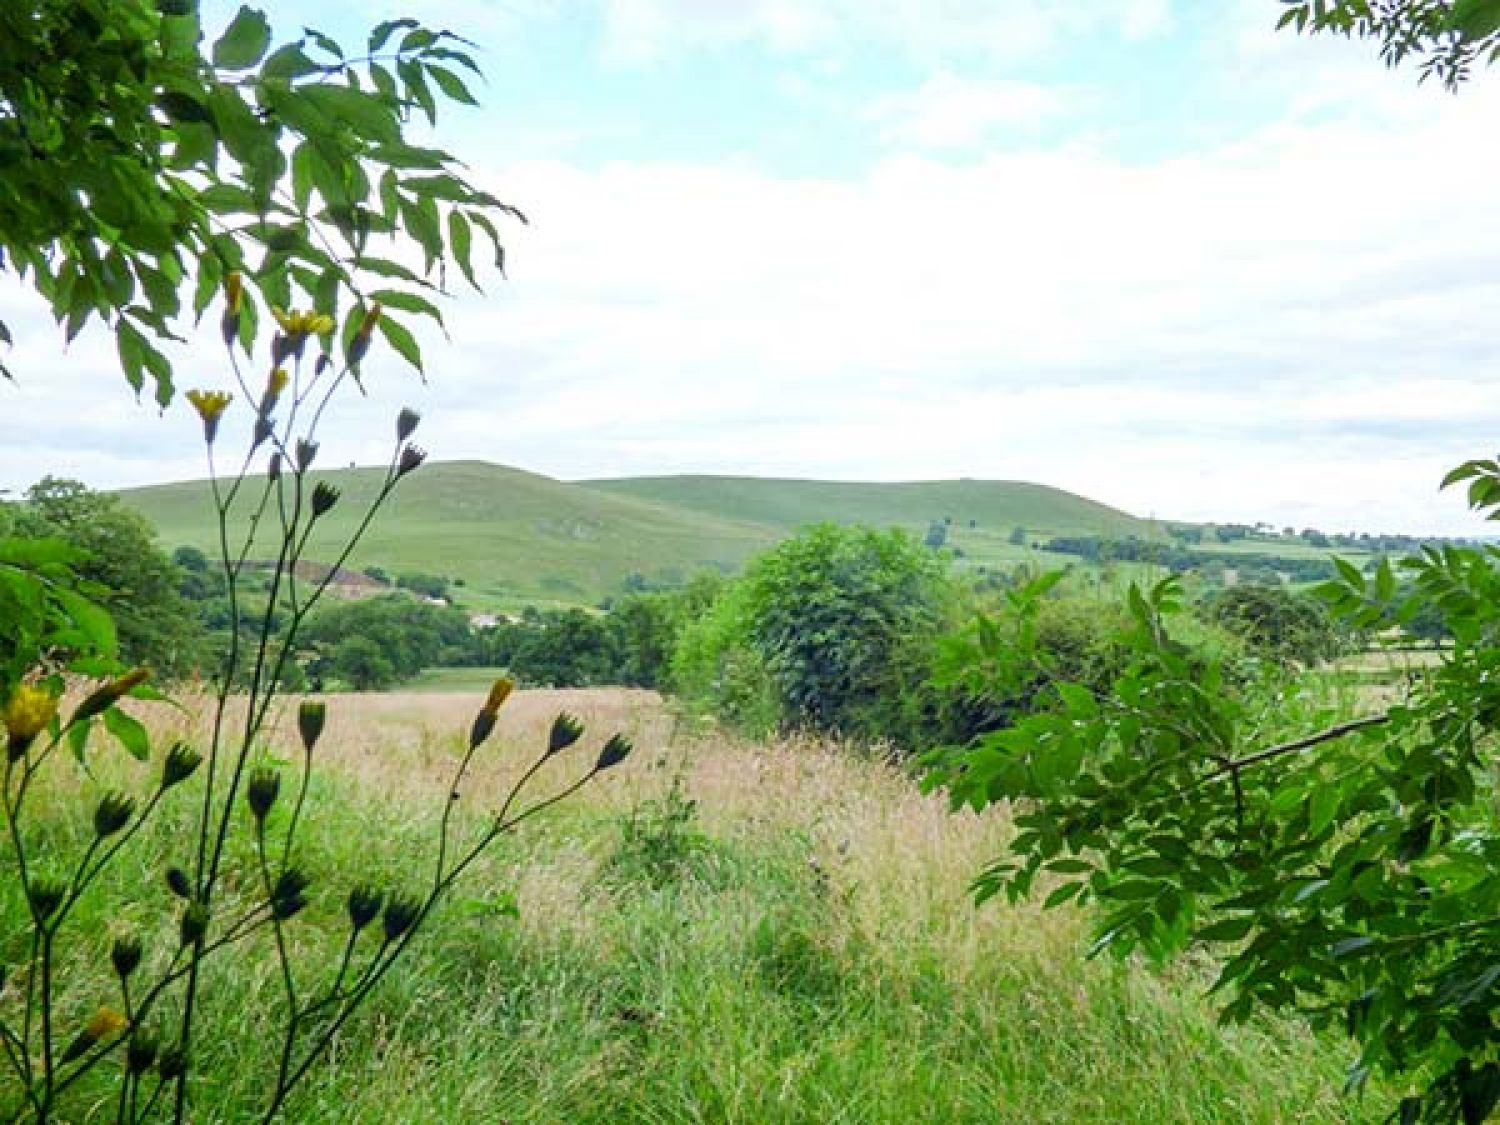 Jacob S Barn Ramshorn Peak District Self Catering Holiday Cottage